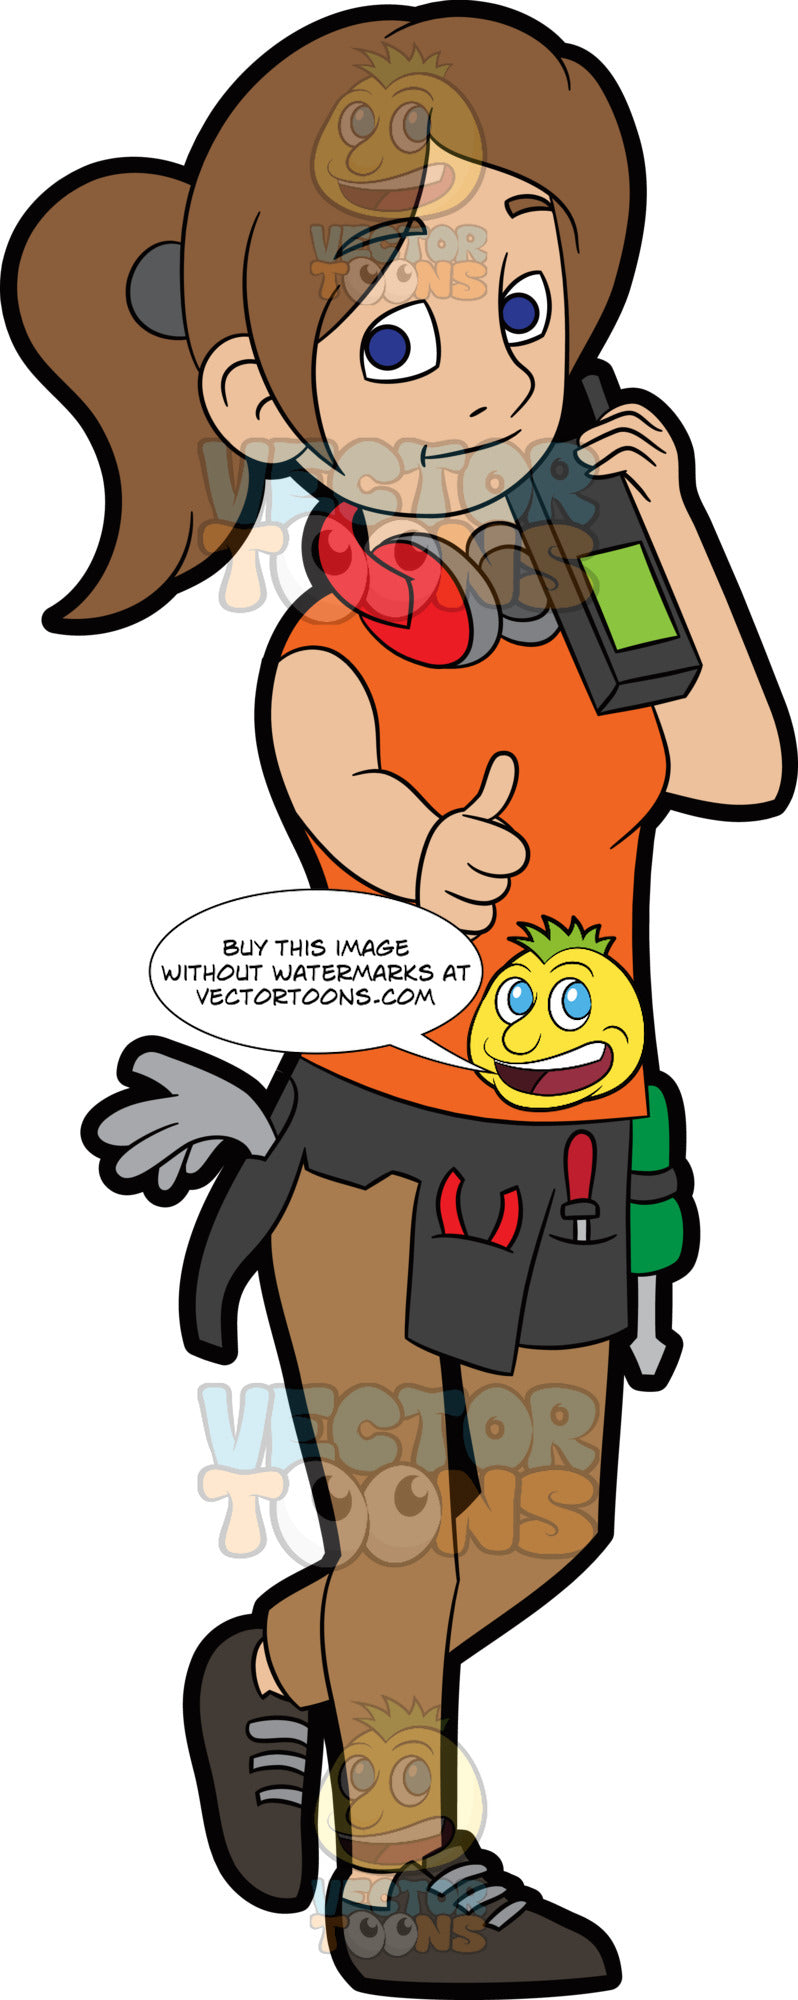 A Female Construction Worker Gesturing A Thumbs Up Sign